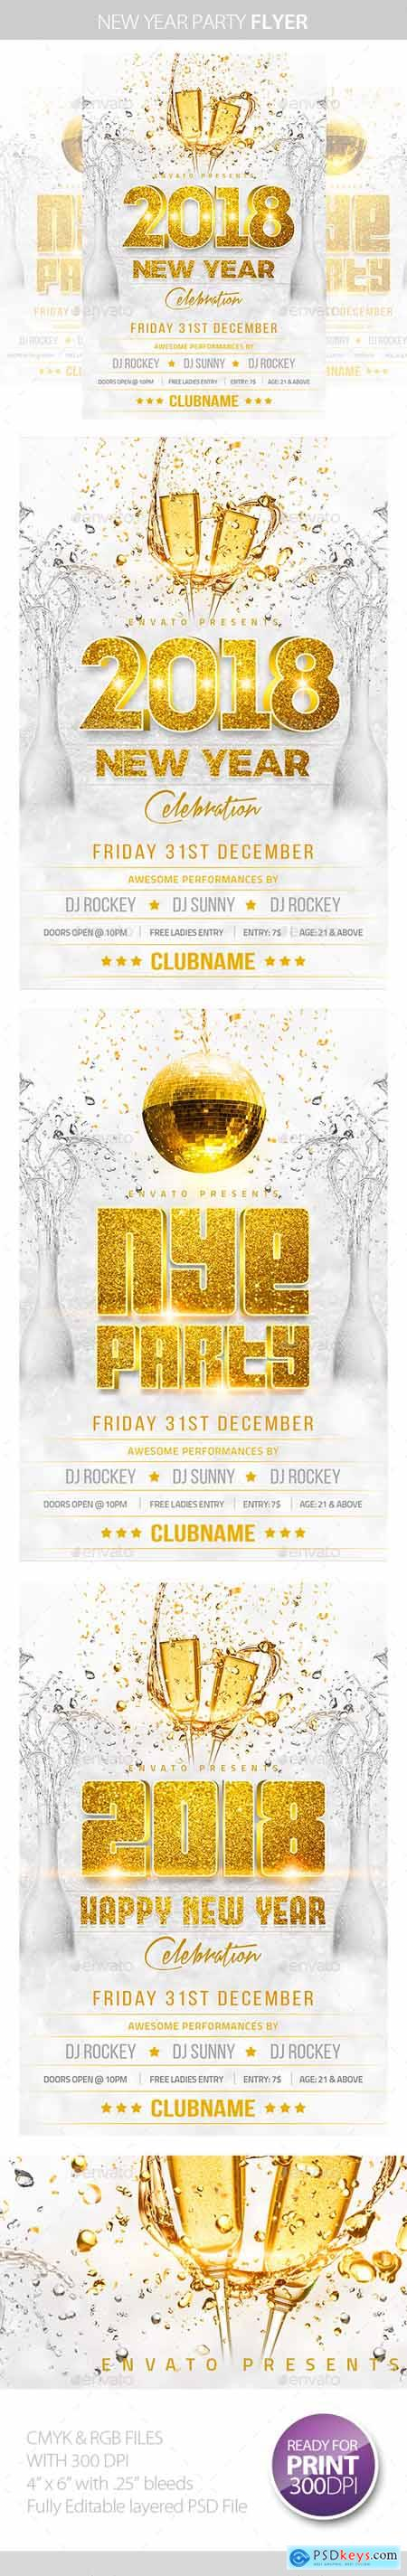 New Year Party Flyer 13670368